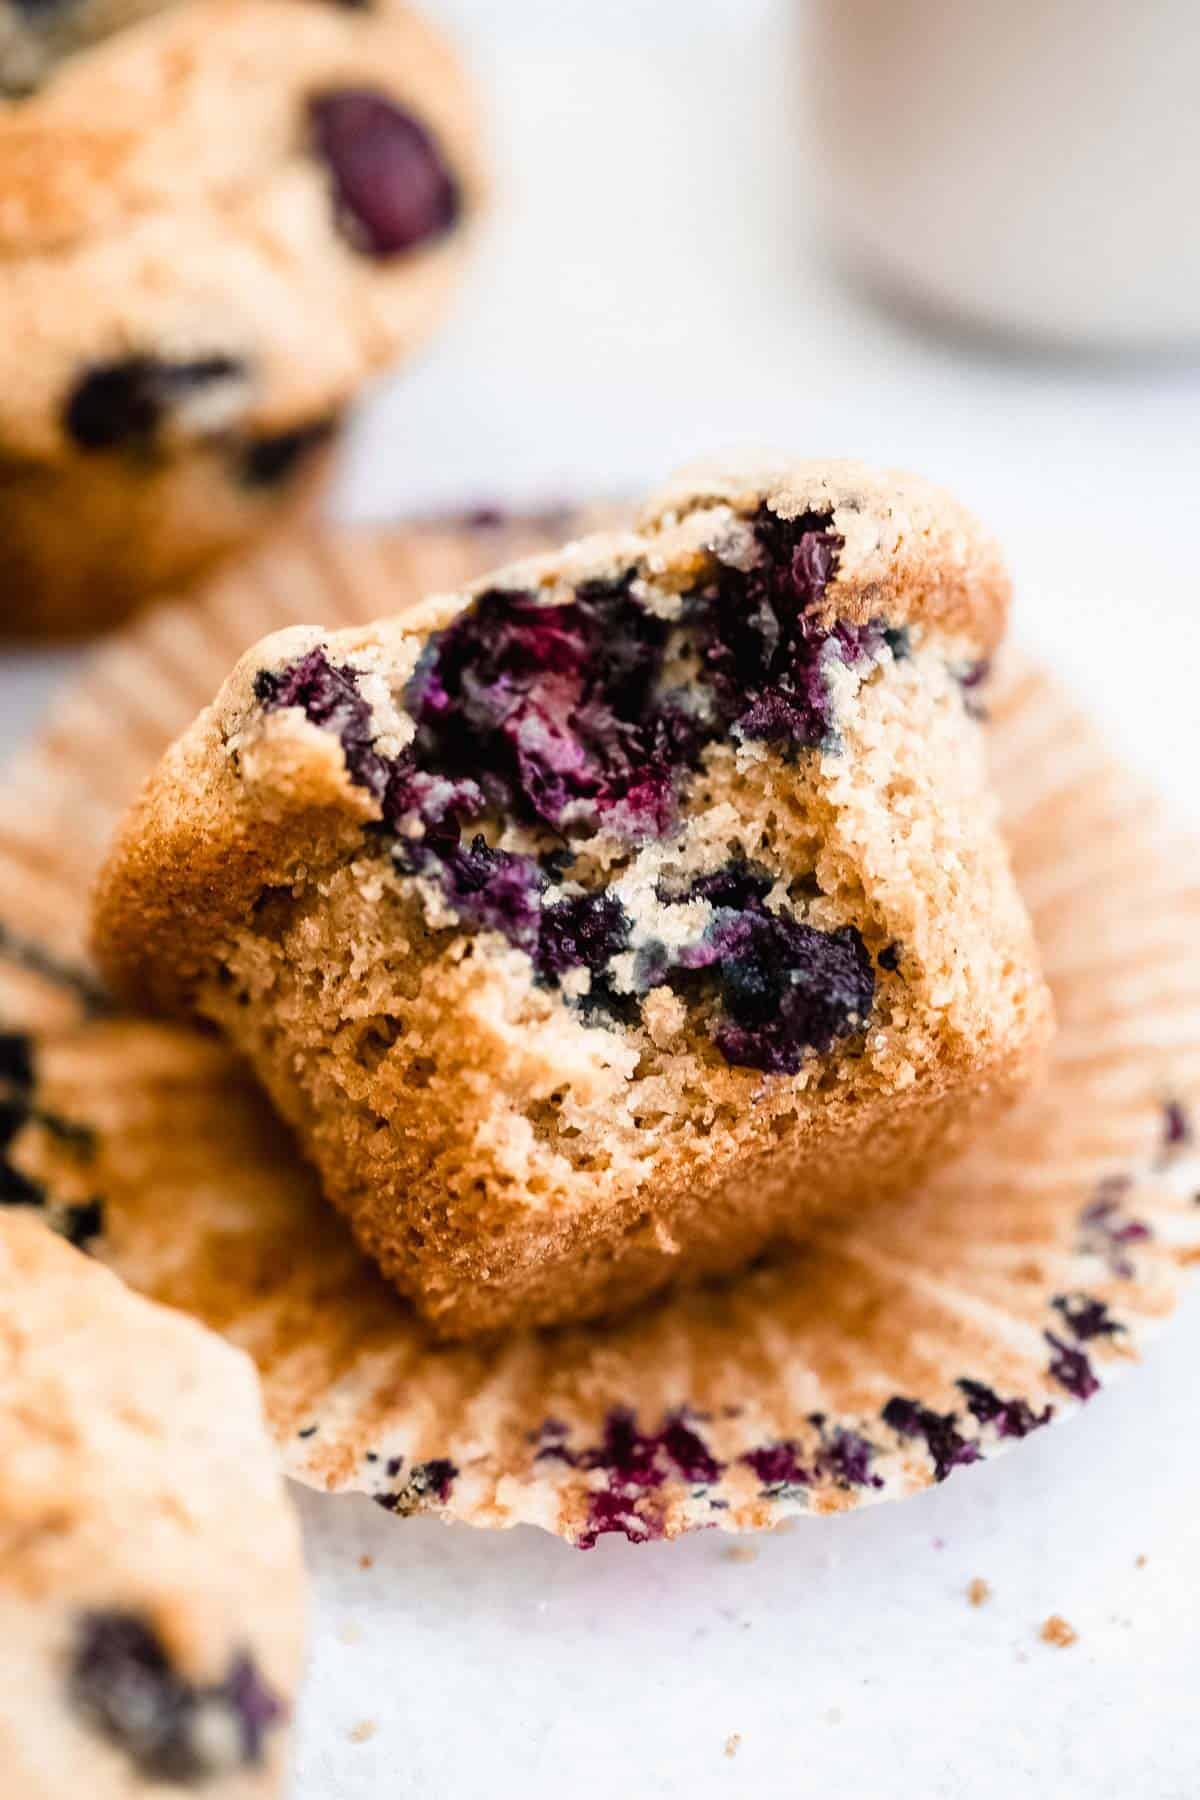 gluten free blueberry muffin with a bite taken out